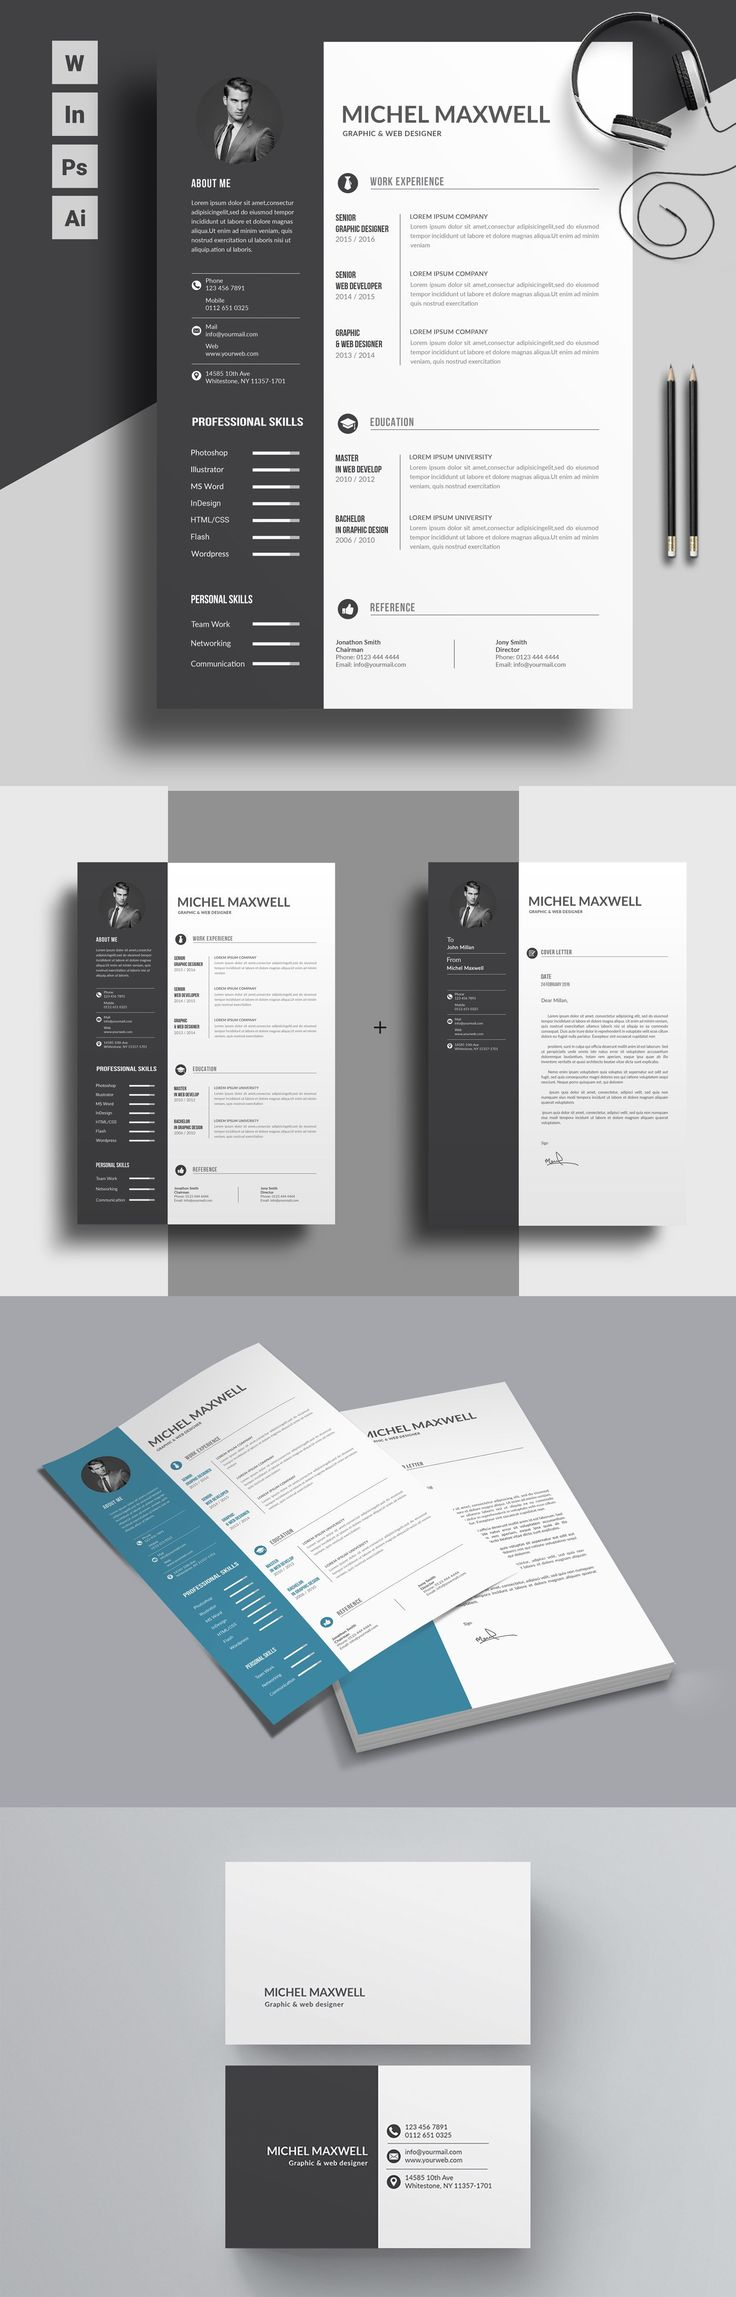 Trendy Resume format for professionals. Suitable for all sort of career. MS Word Version available. The pack comes with free coverletter template and a free business card psd/word template. Download Now!